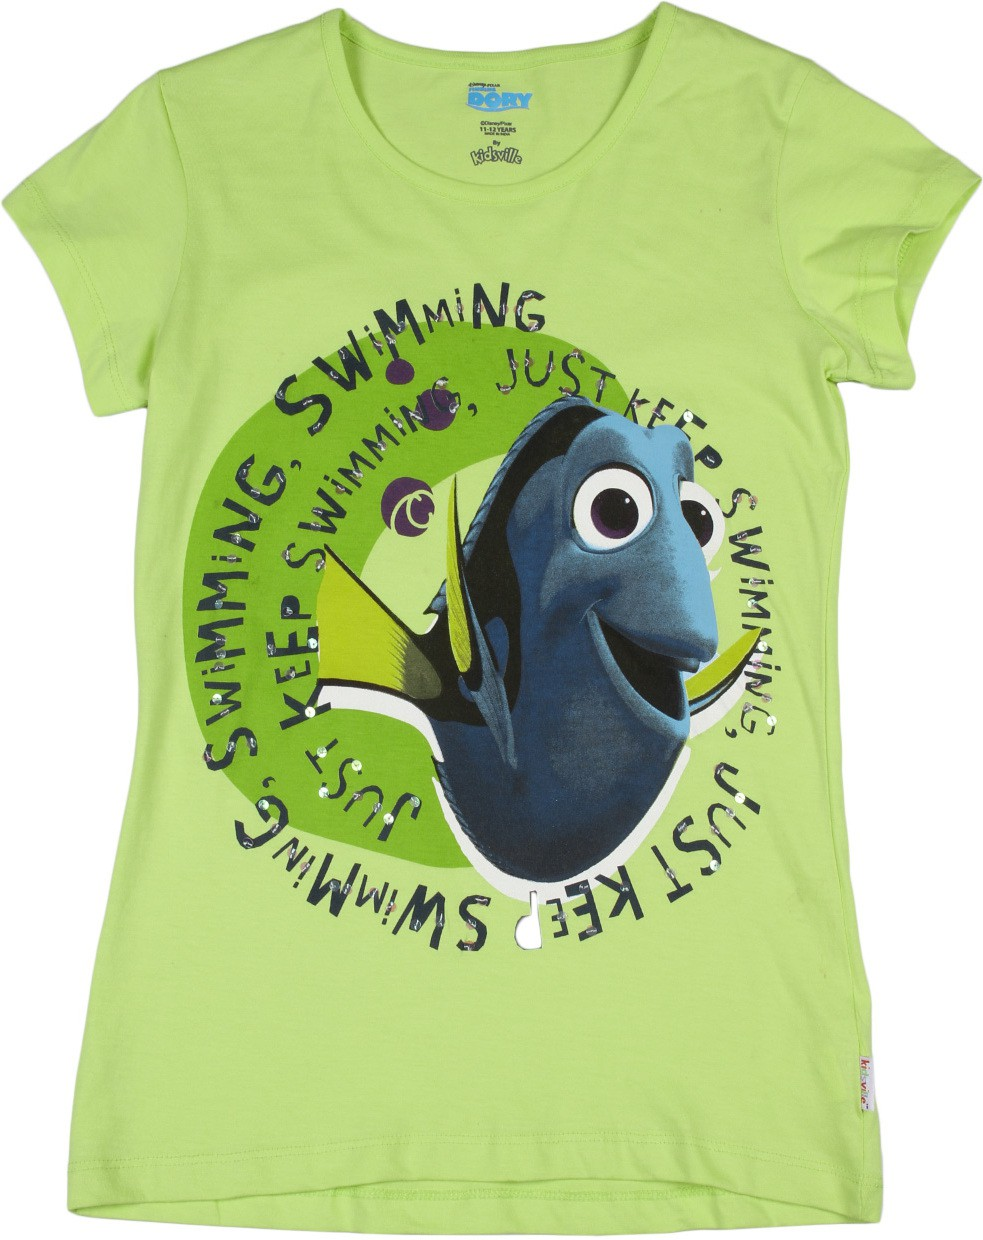 Deals | Kids Tees and Tops UCB, People, 612 League.